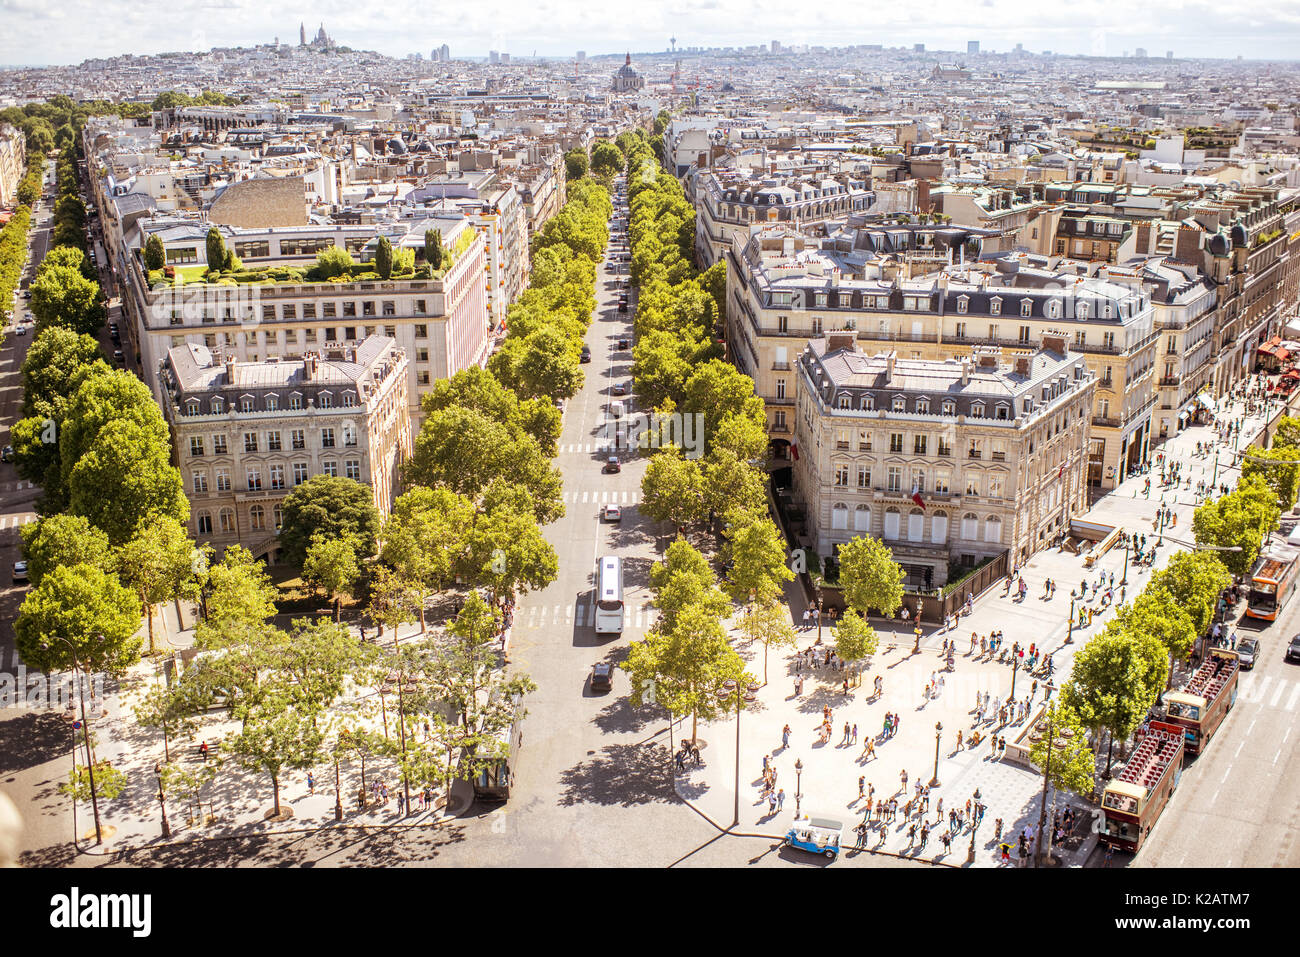 Cityscape view of Paris - Stock Image